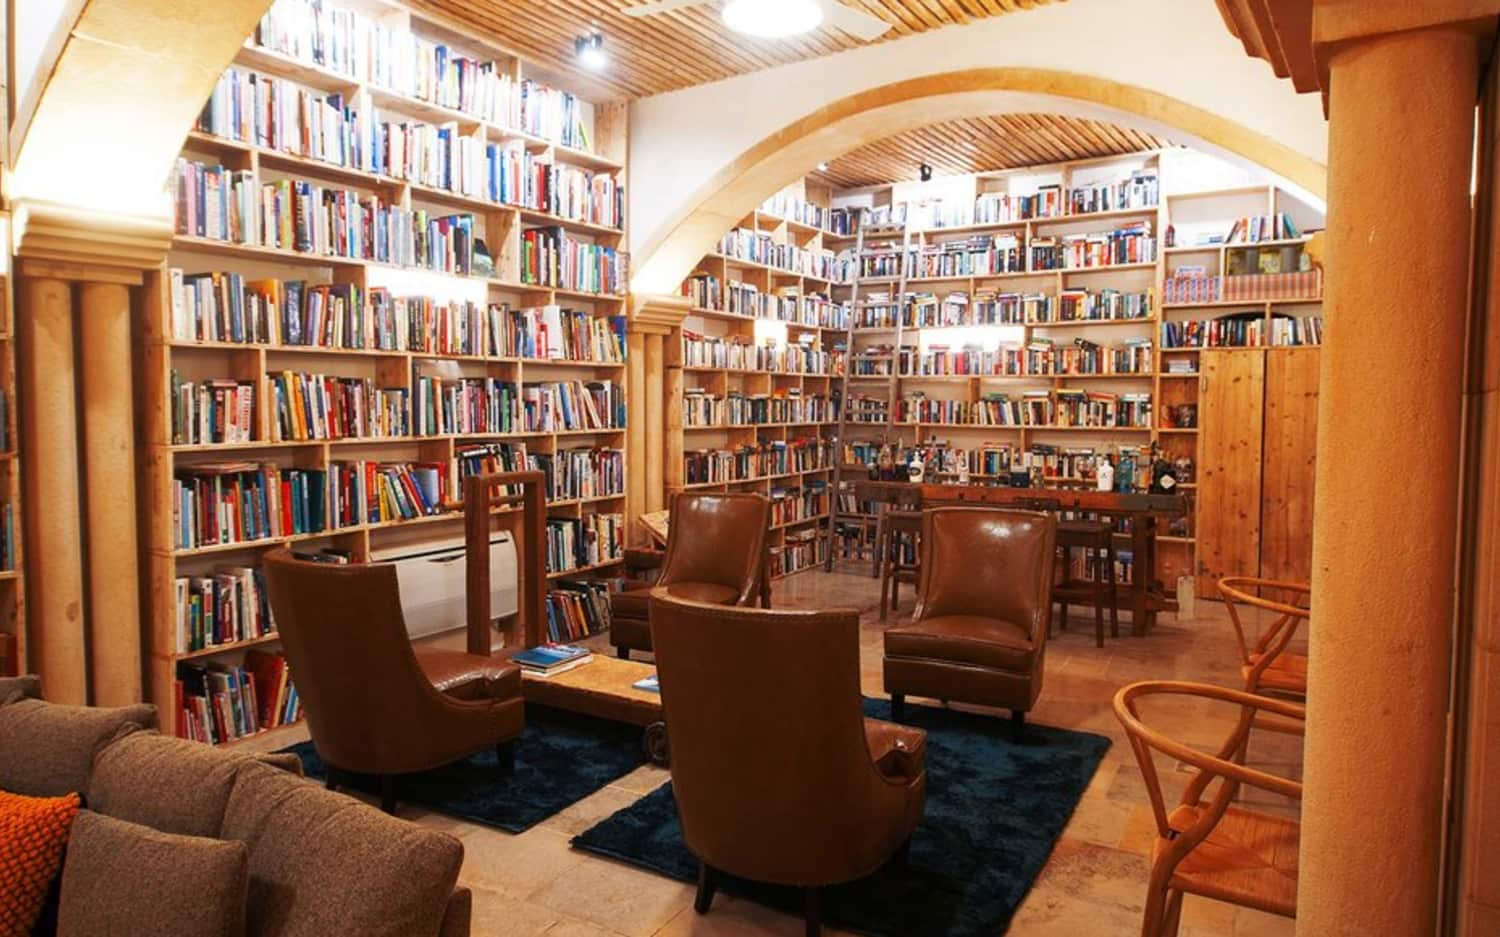 This Hotel in Portugal is a Book Lover's Dream Come True